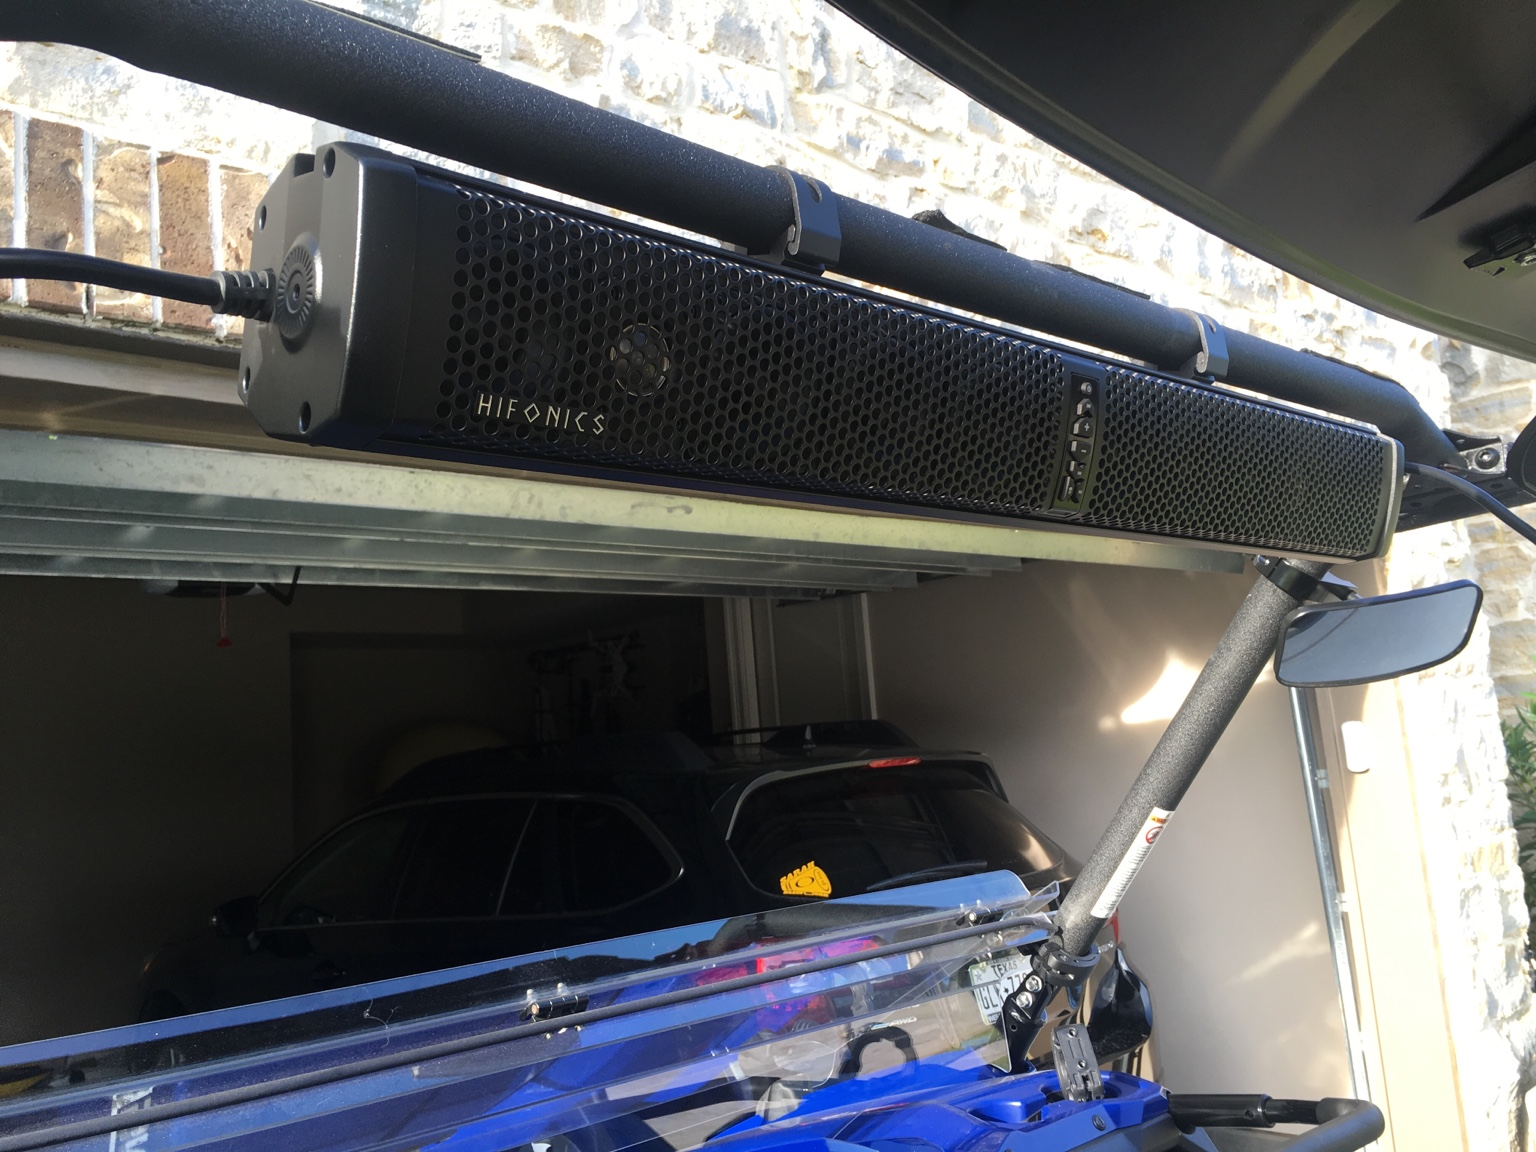 Sound Bar Yamaha Viking Forum Hifonics Wiring Diagram Same Easy Hook Up Took It For A Spin And I Like The Better Also Comes With Mounting Brackets Instructions Are An Absolute Joke But To